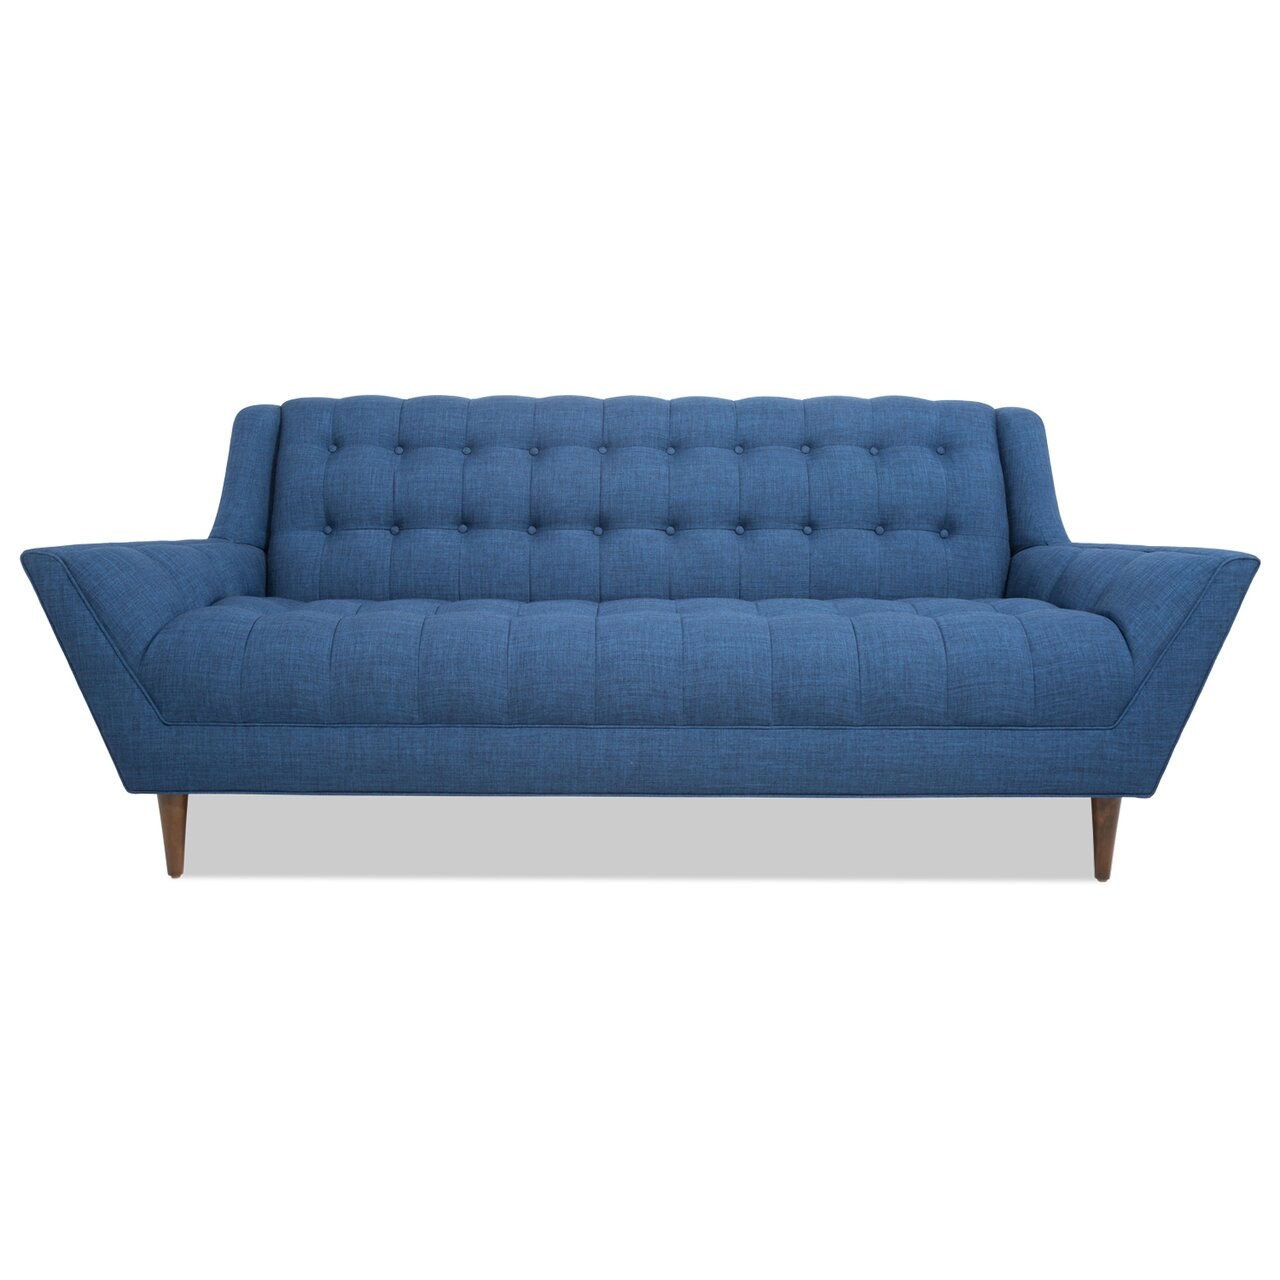 Affordable modern sofa sofas mid century sofas for luxury for Modern loveseat